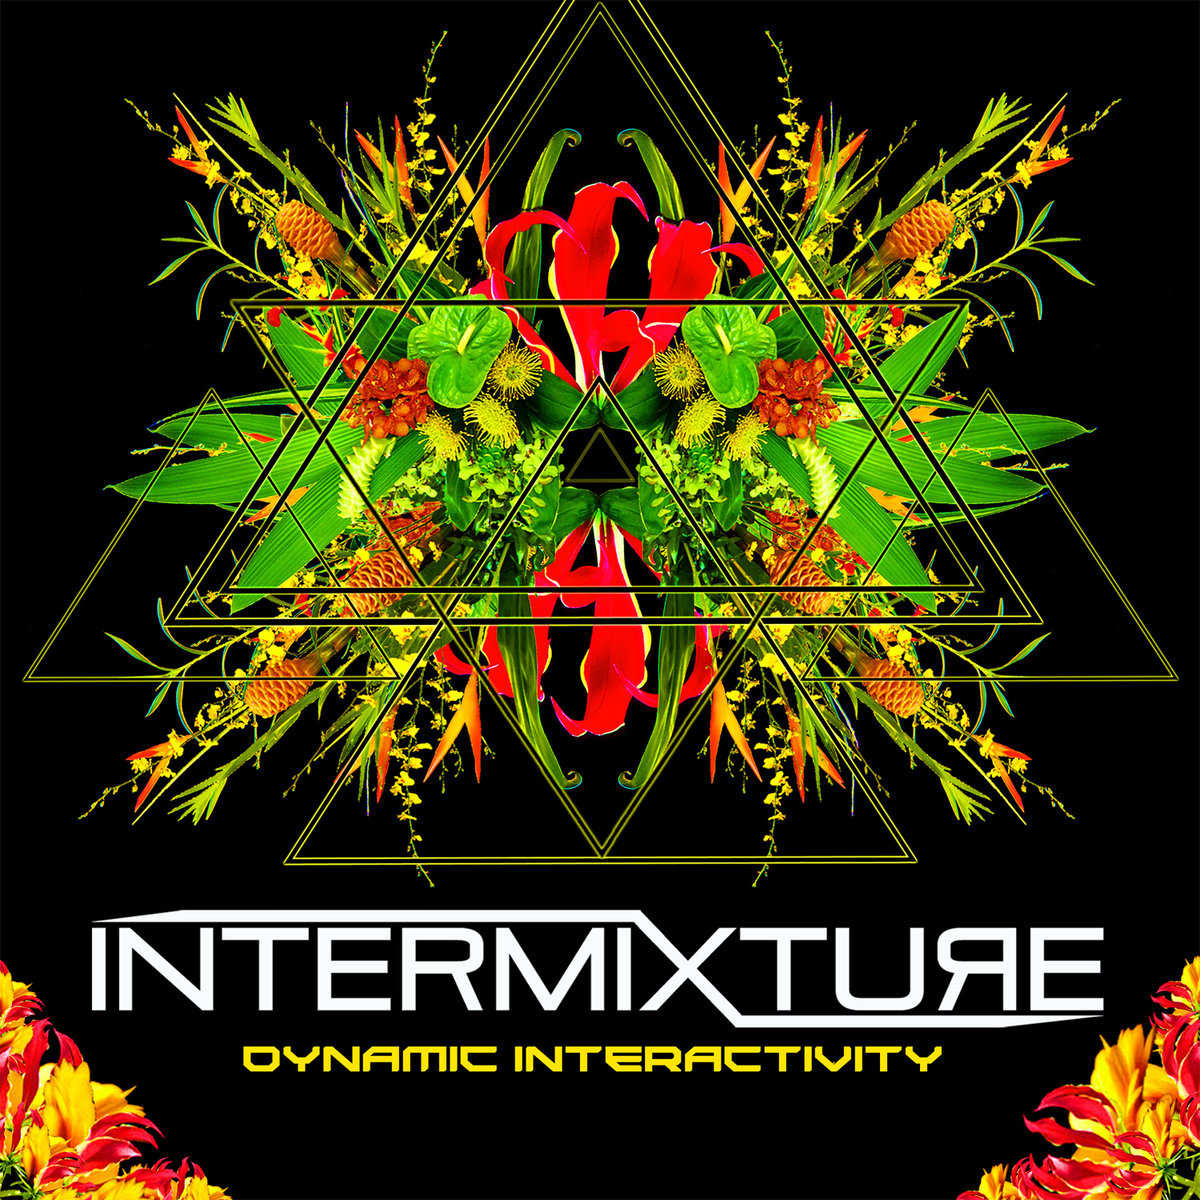 Intermixture - Liquid Fidelity @ 'Dynamic Interactivity' album (bass, electronic)